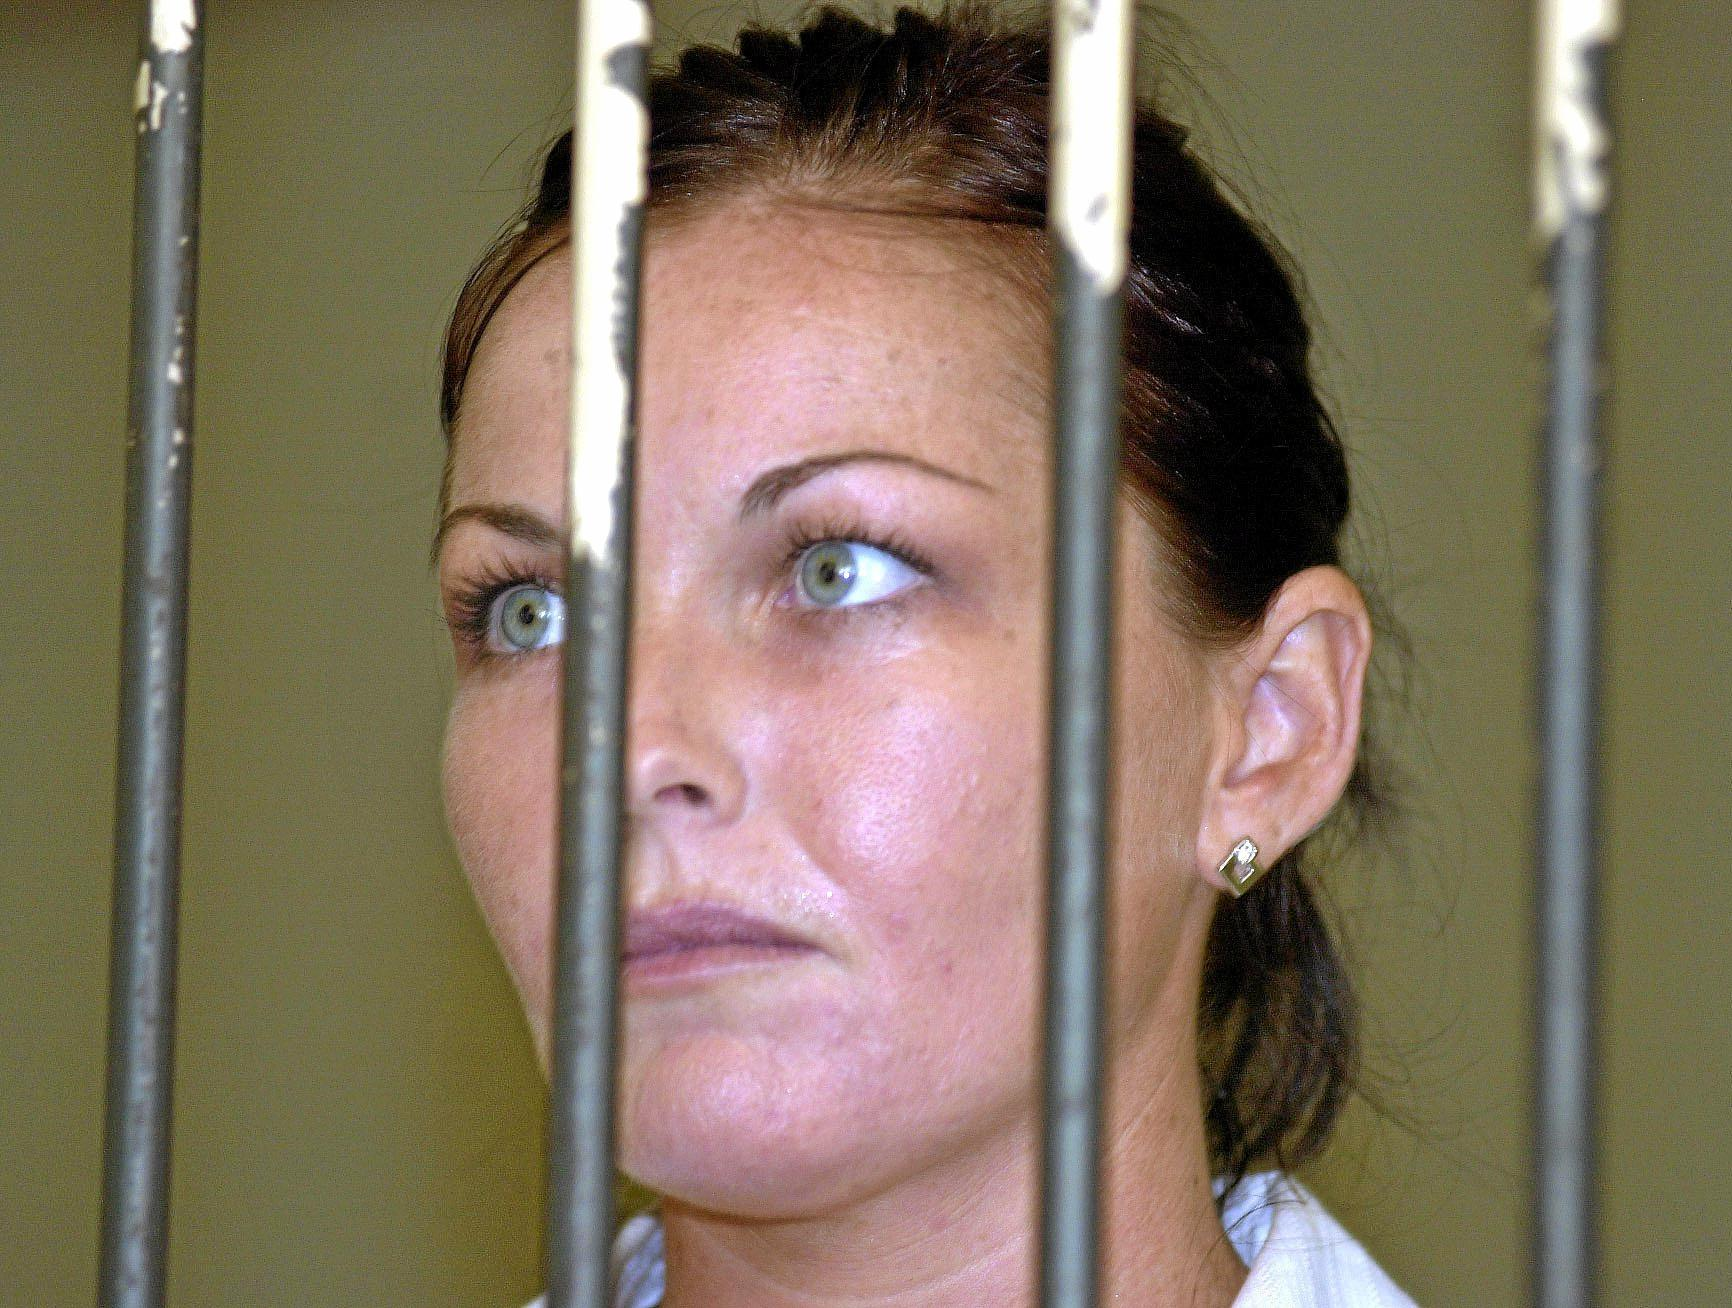 Convicted drug smuggler Schapelle Corby stands behind the bars at court's prison before her appeal trial in Denpasar's court, Bali, Indonesia, in 2005.